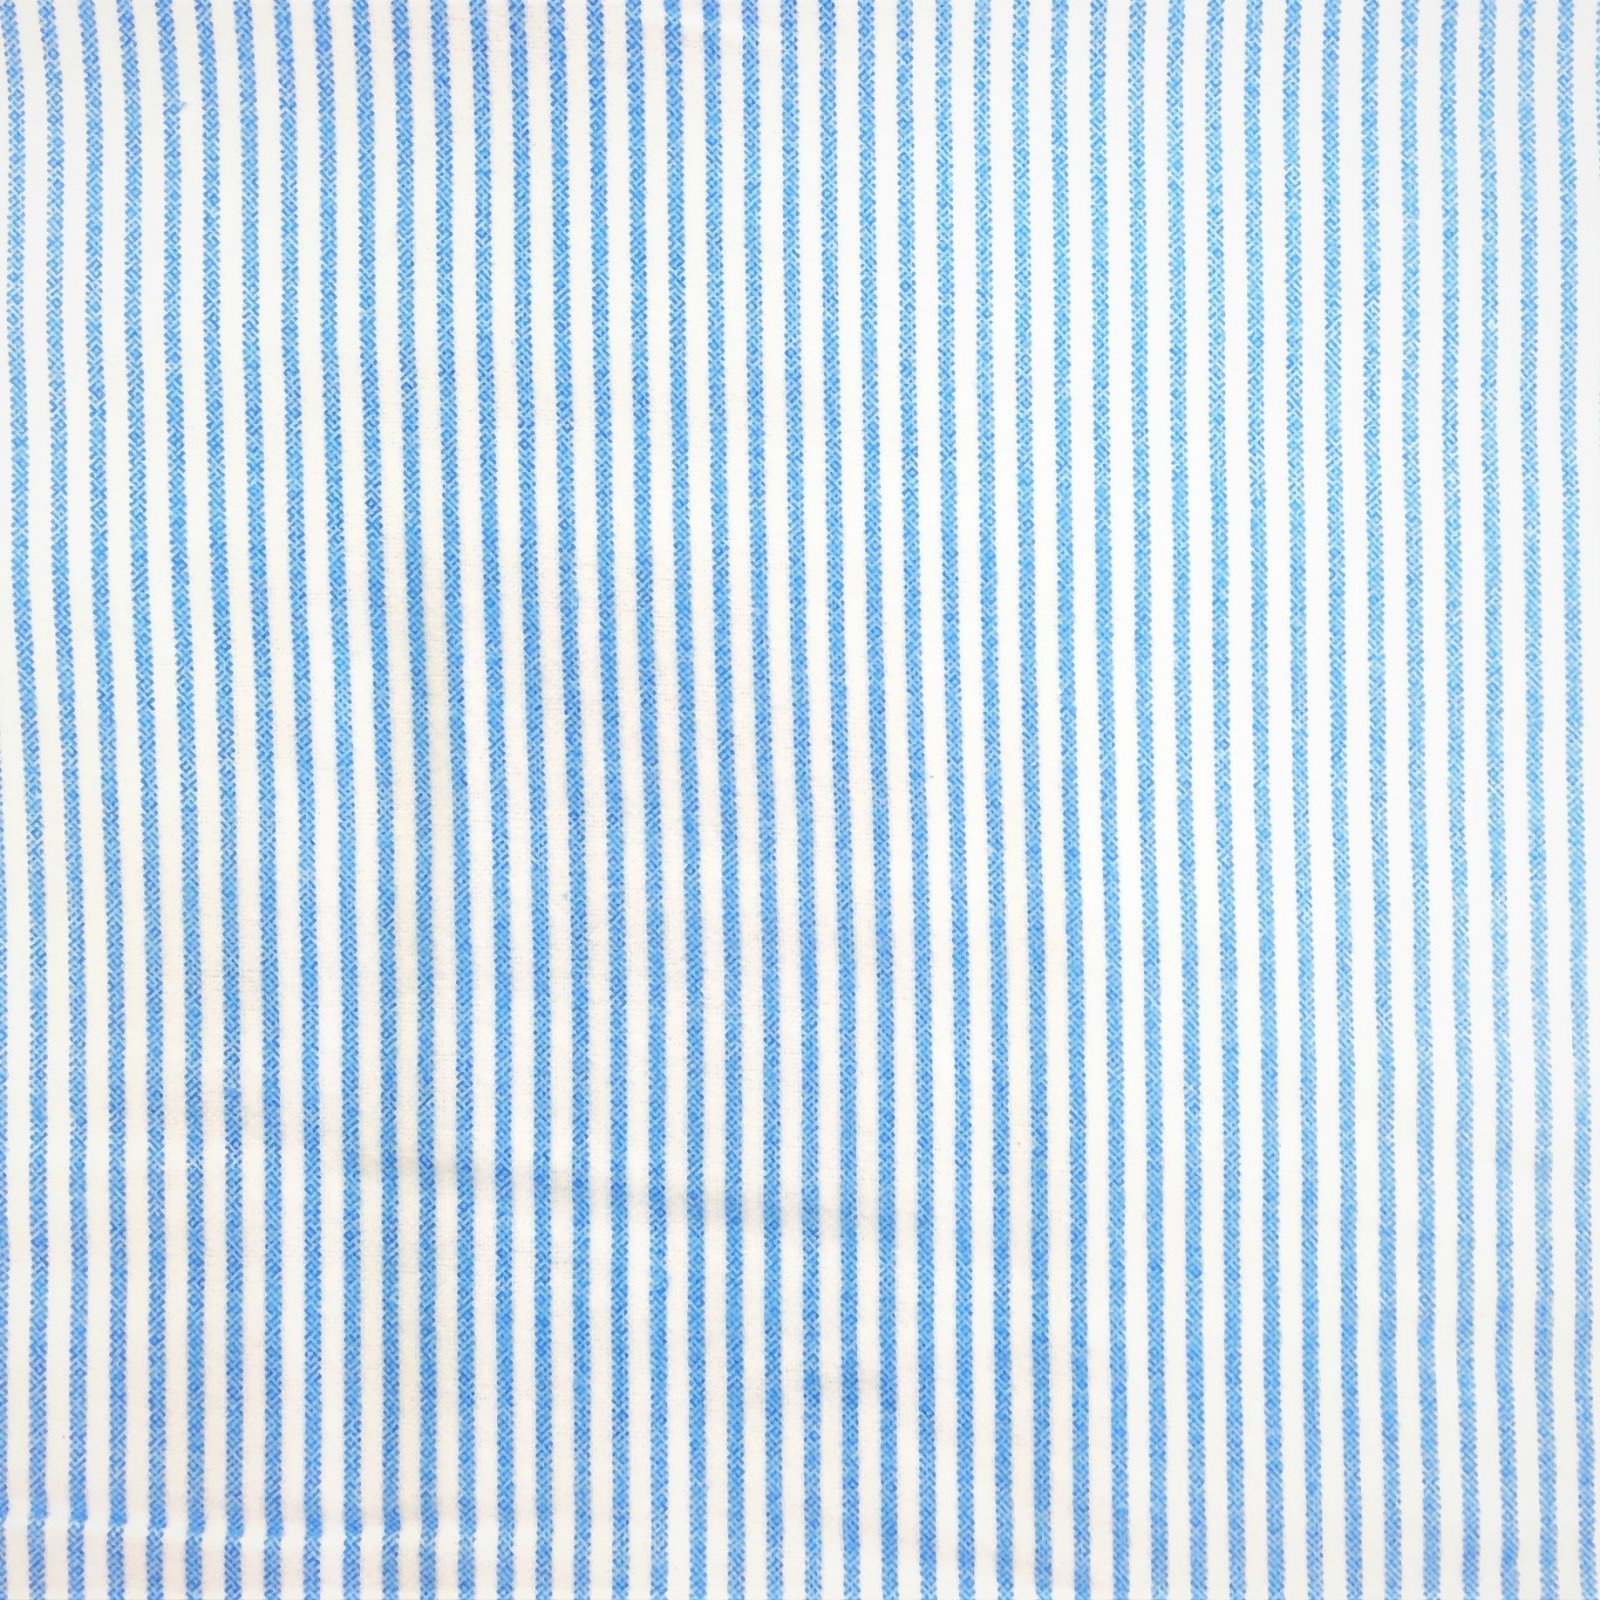 Flannel Print 100% Cotton Blue and White Stripes